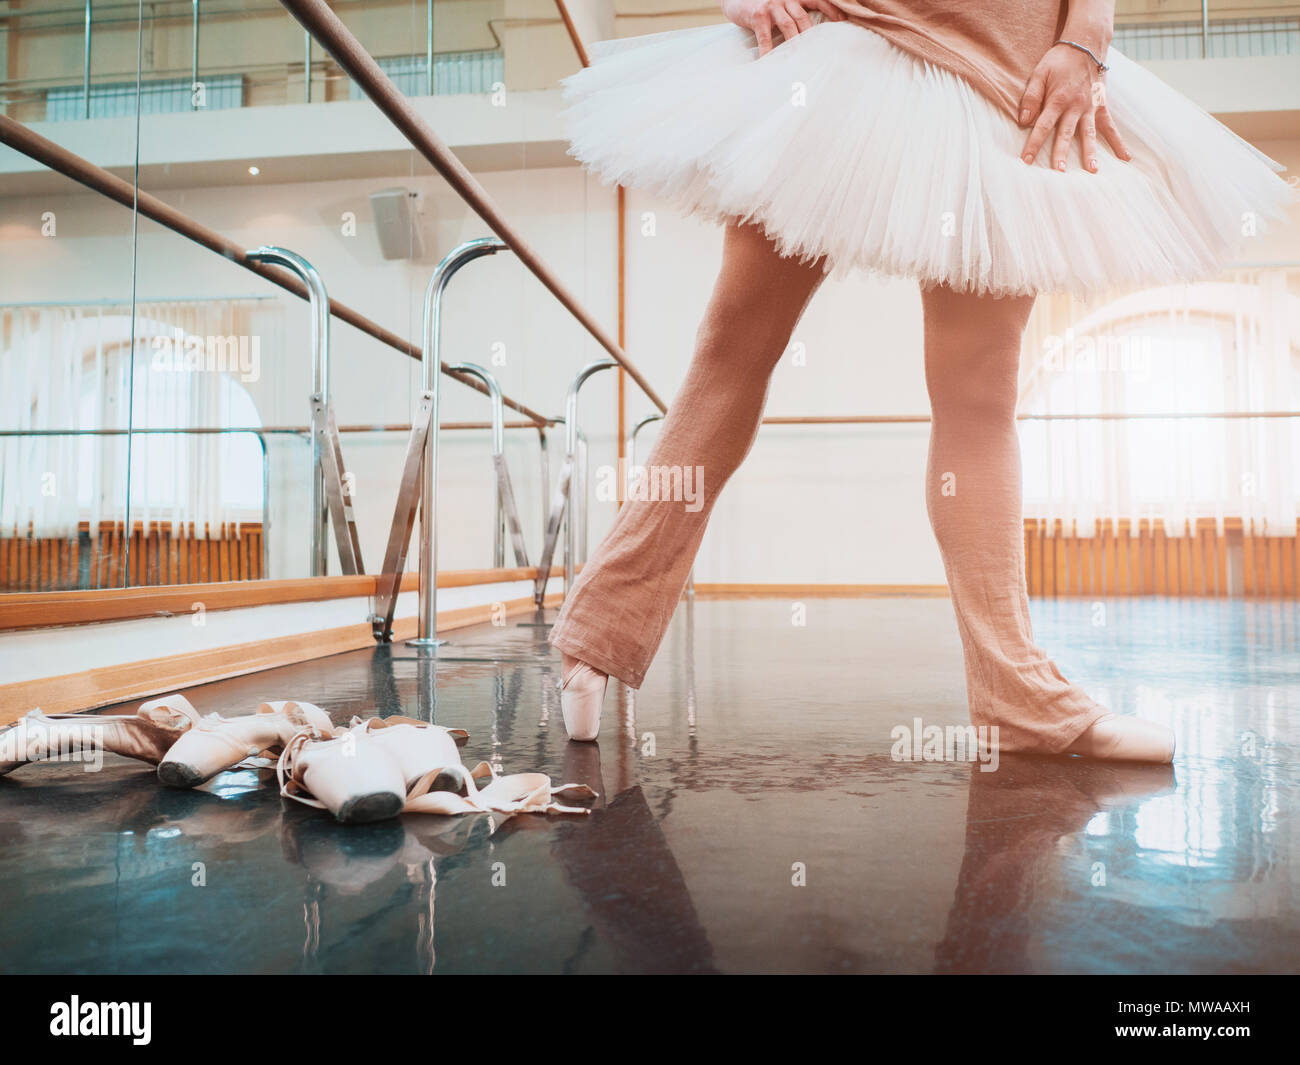 Ballerina in ballet pointe and white tutu stretches on barre in gym. Woman practicing in dance studio. Work out of young girl. Stock Photo